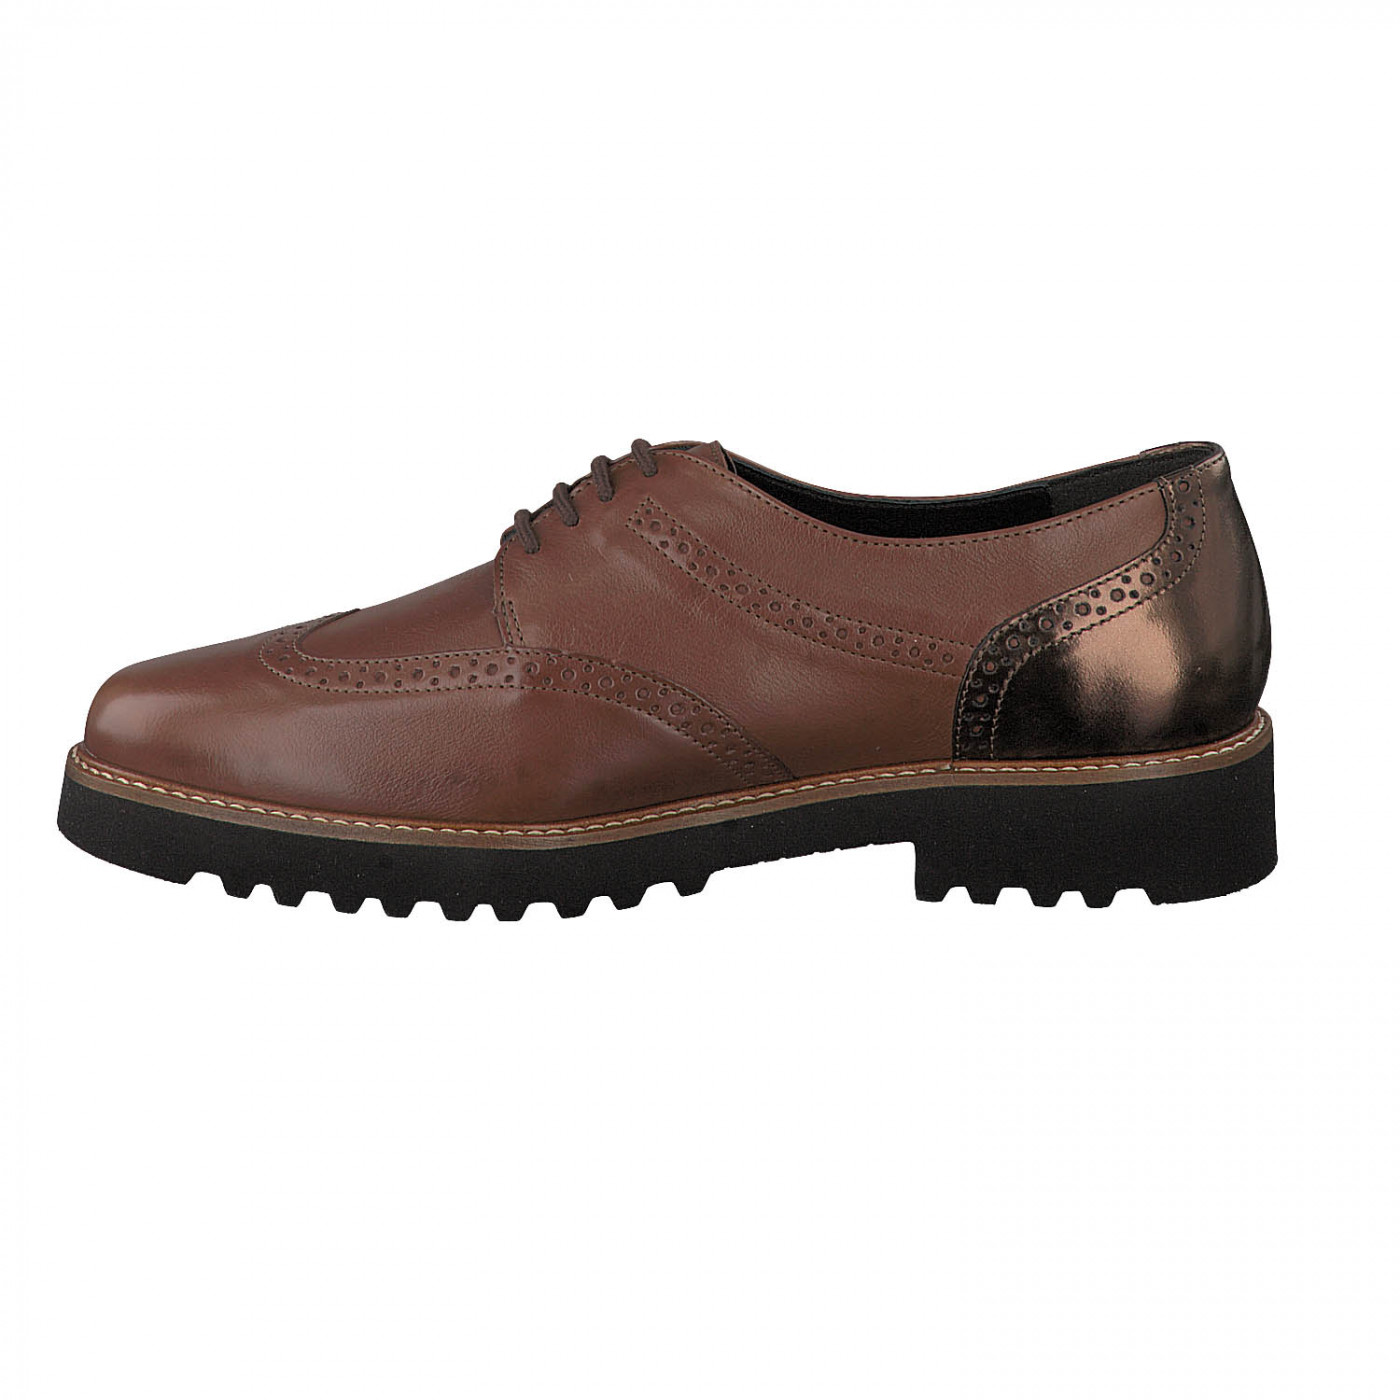 3373d558dafde8 Chaussures SALLY marron - Mephisto